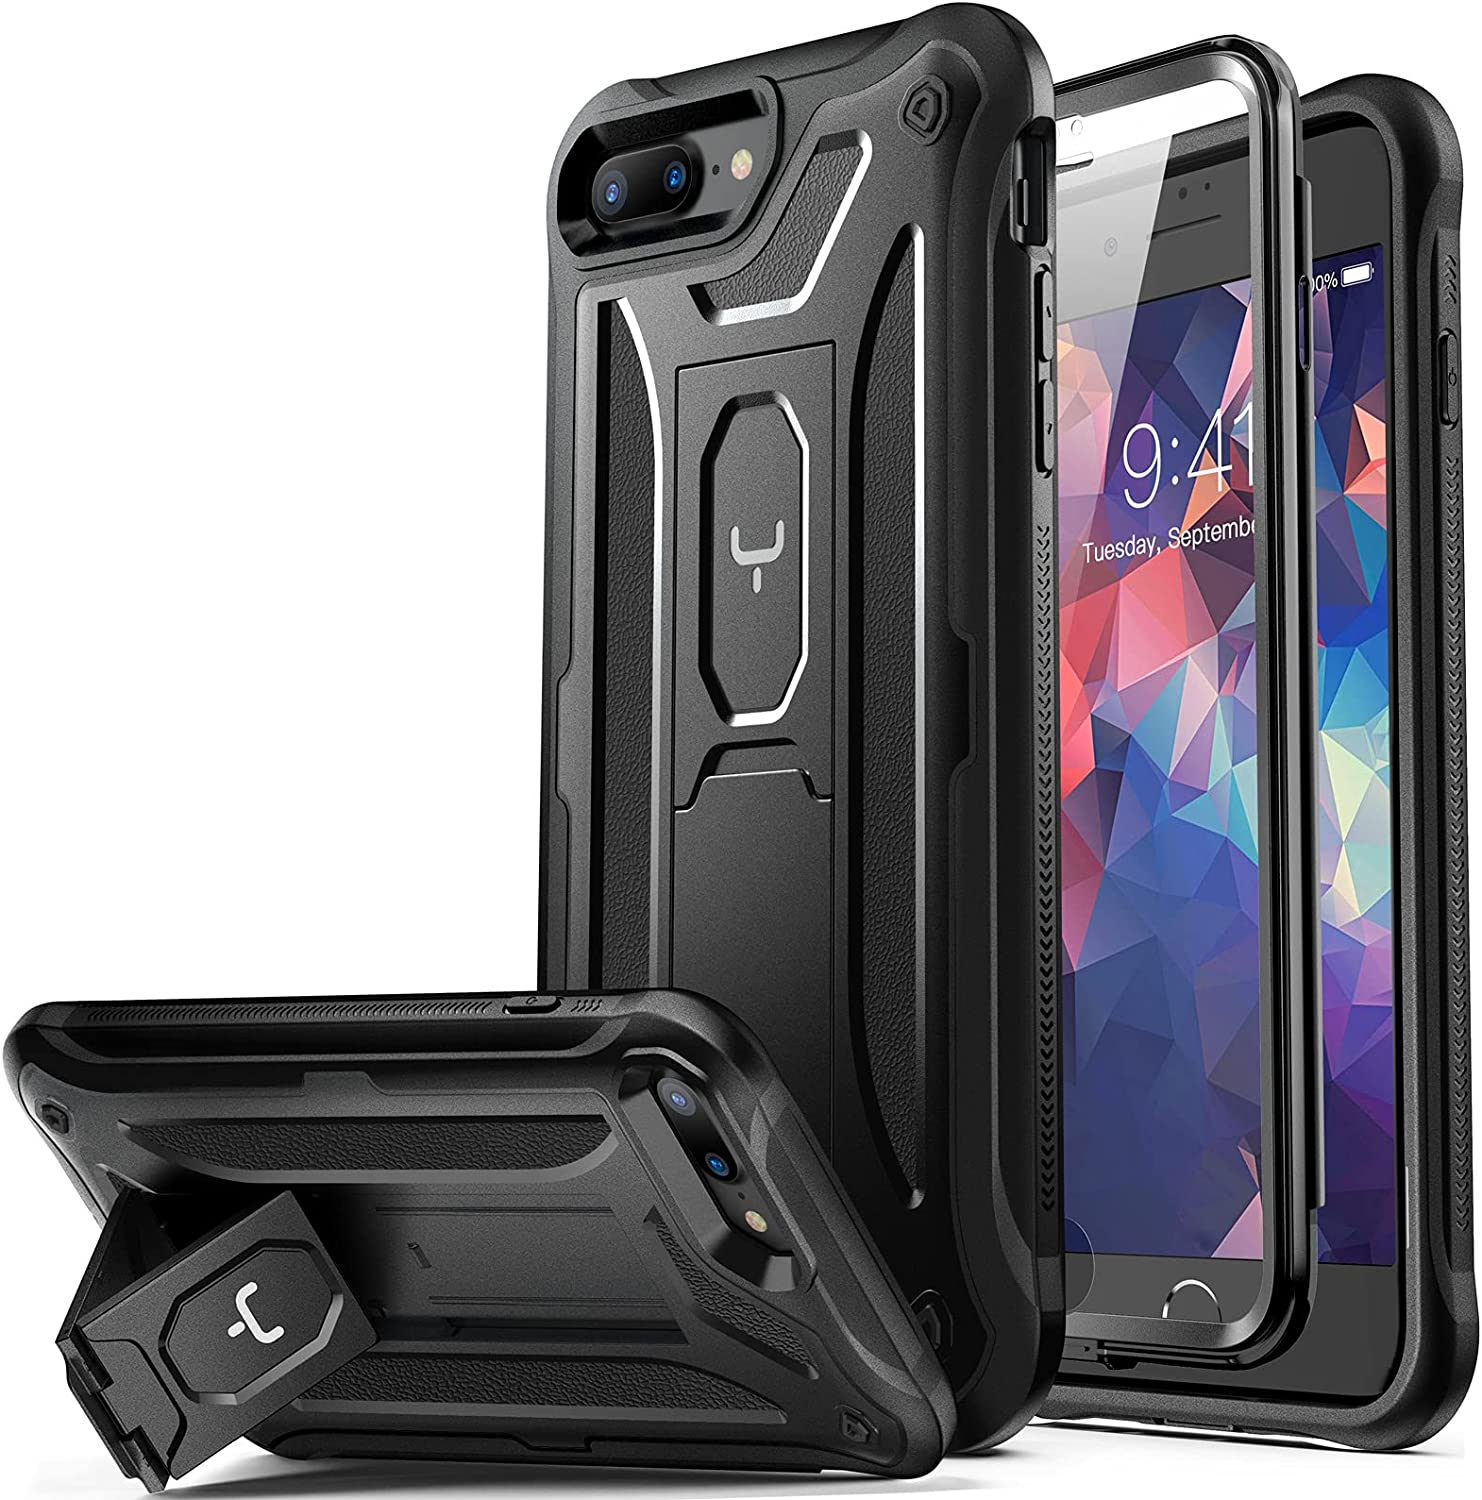 YOUMAKER iPhone 8 Plus Case, iPhone 7 Plus Case, Built-in Screen Protector Kickstand Full Body Heavy Duty Shockproof Cover for iPhone 8 Plus & iPhone 7 Plus 5.5 inch - Black